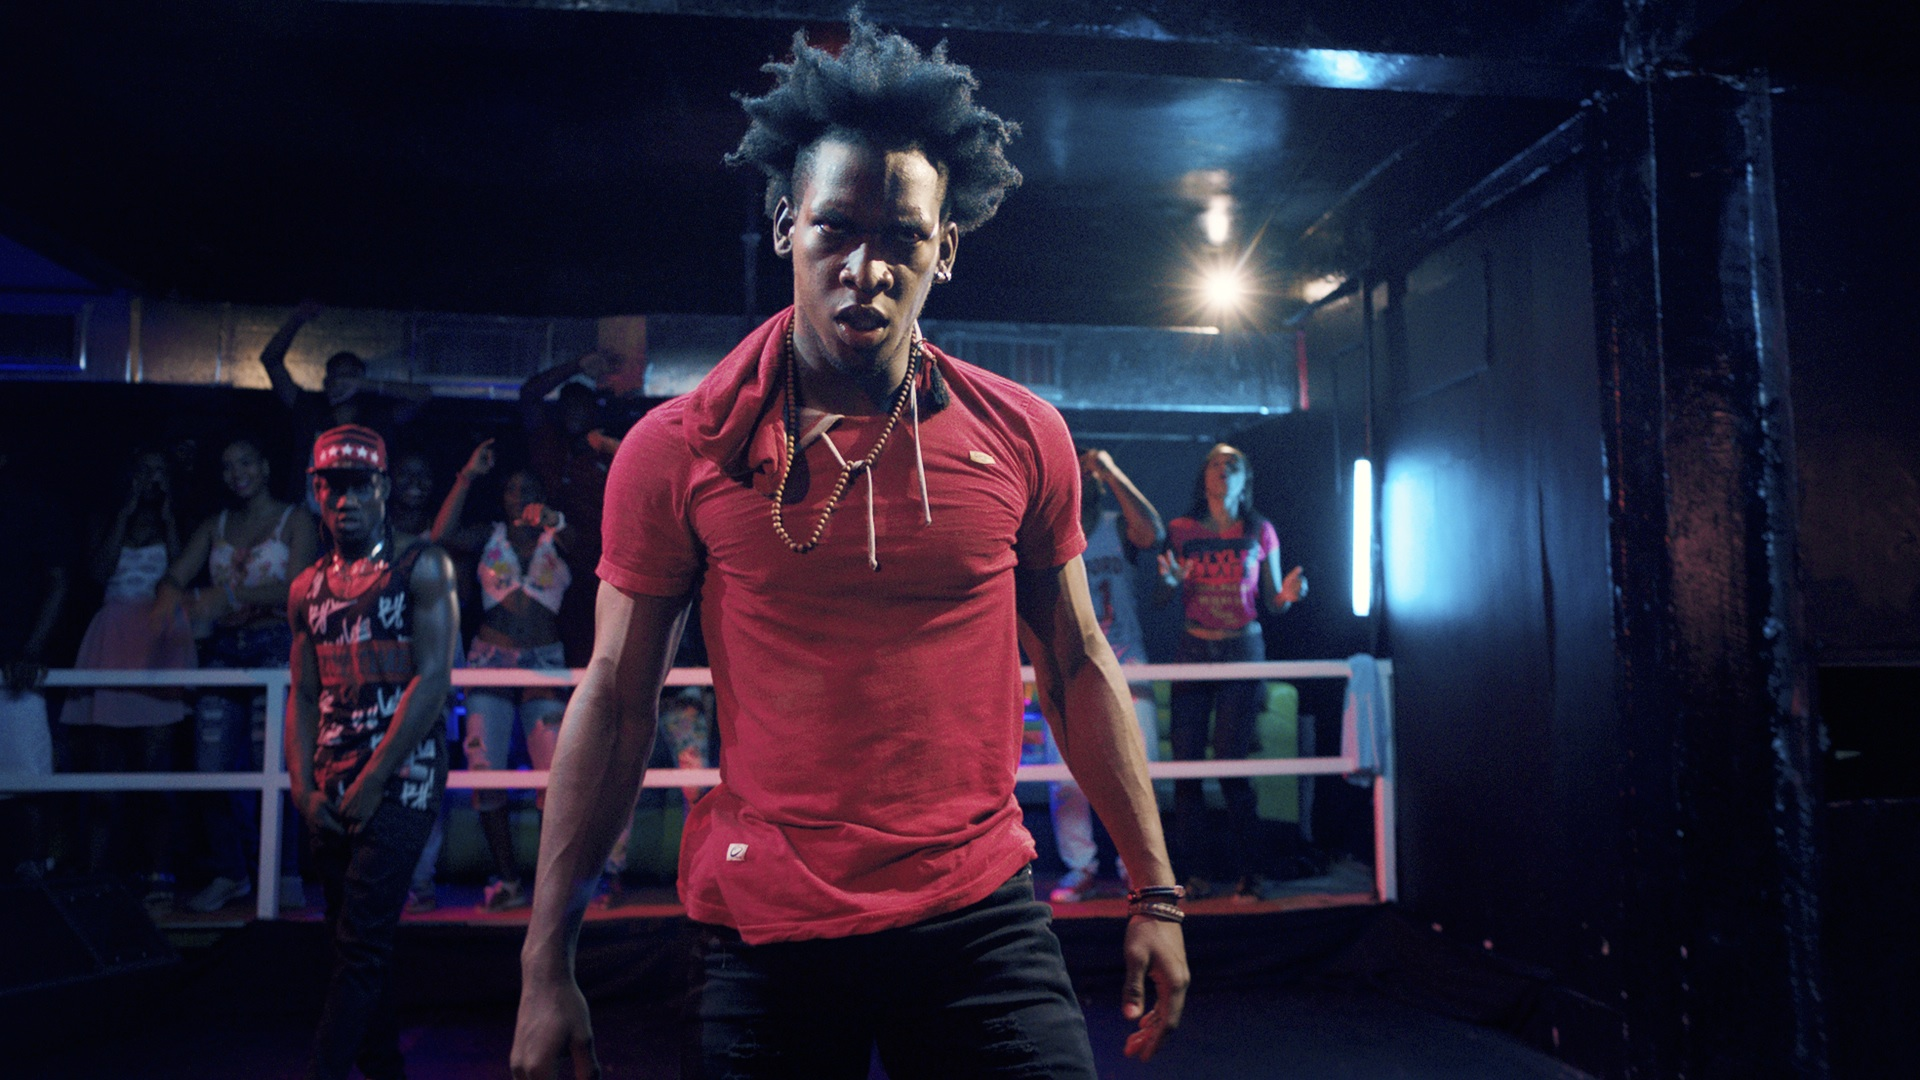 REVIEW: 'Somos Calentura' Is an Afro-Colombian Dance Film With a Pulsating Urbano Soundtrack